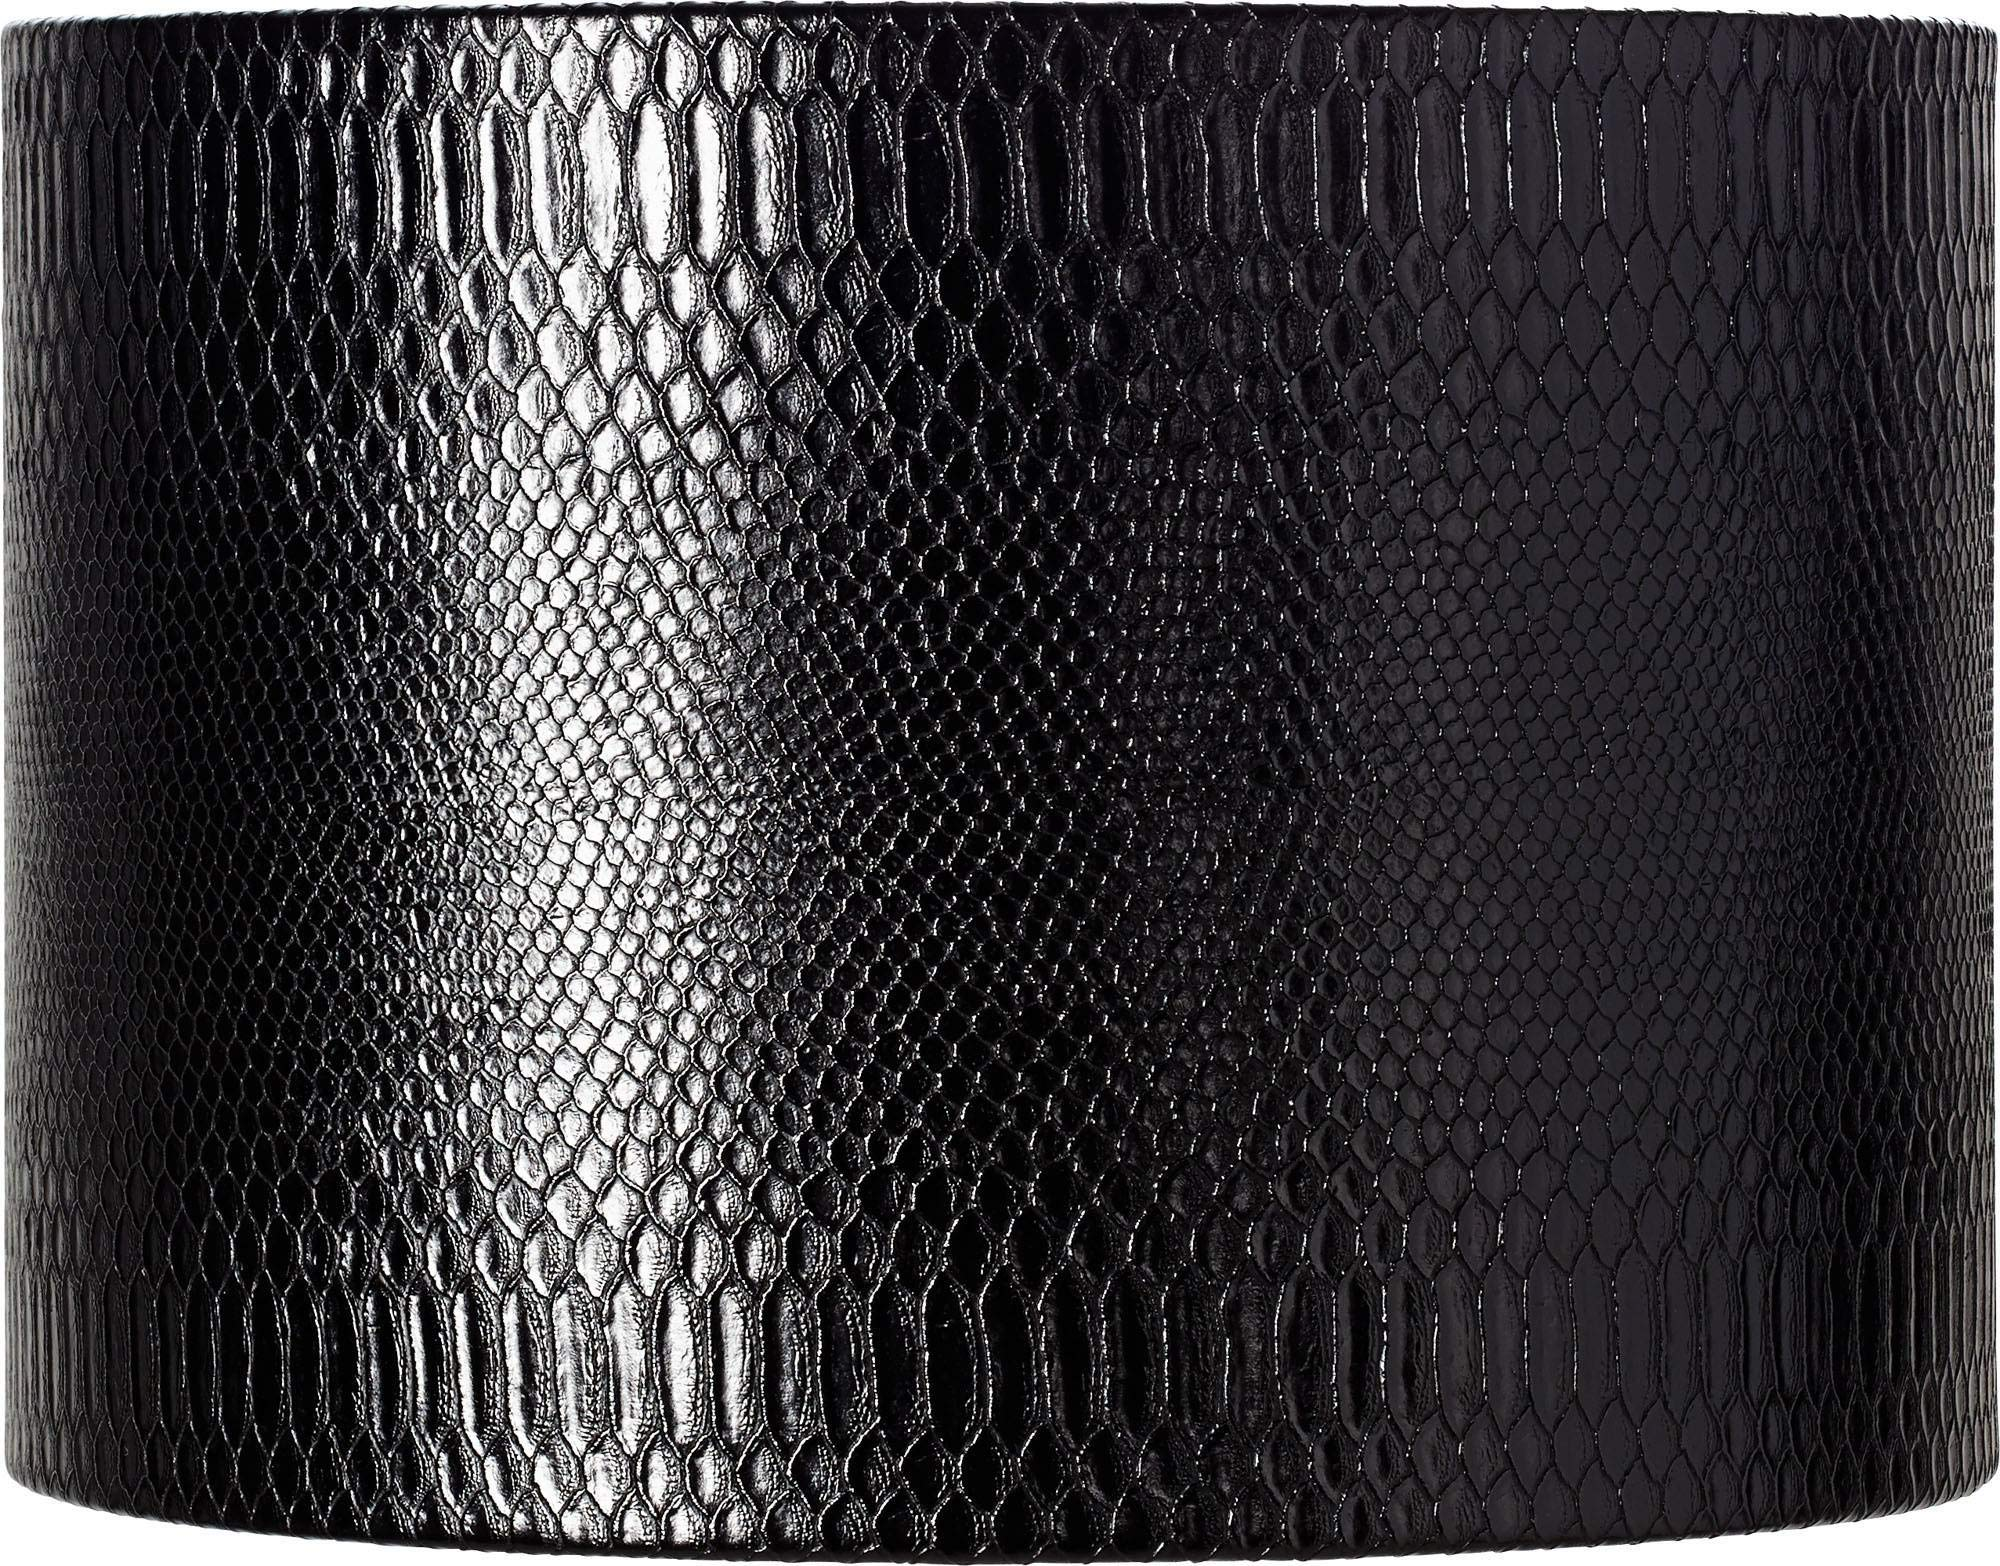 Reptile Print Shade with Silver Lining 15x15x11 (Spider) - Springcrest